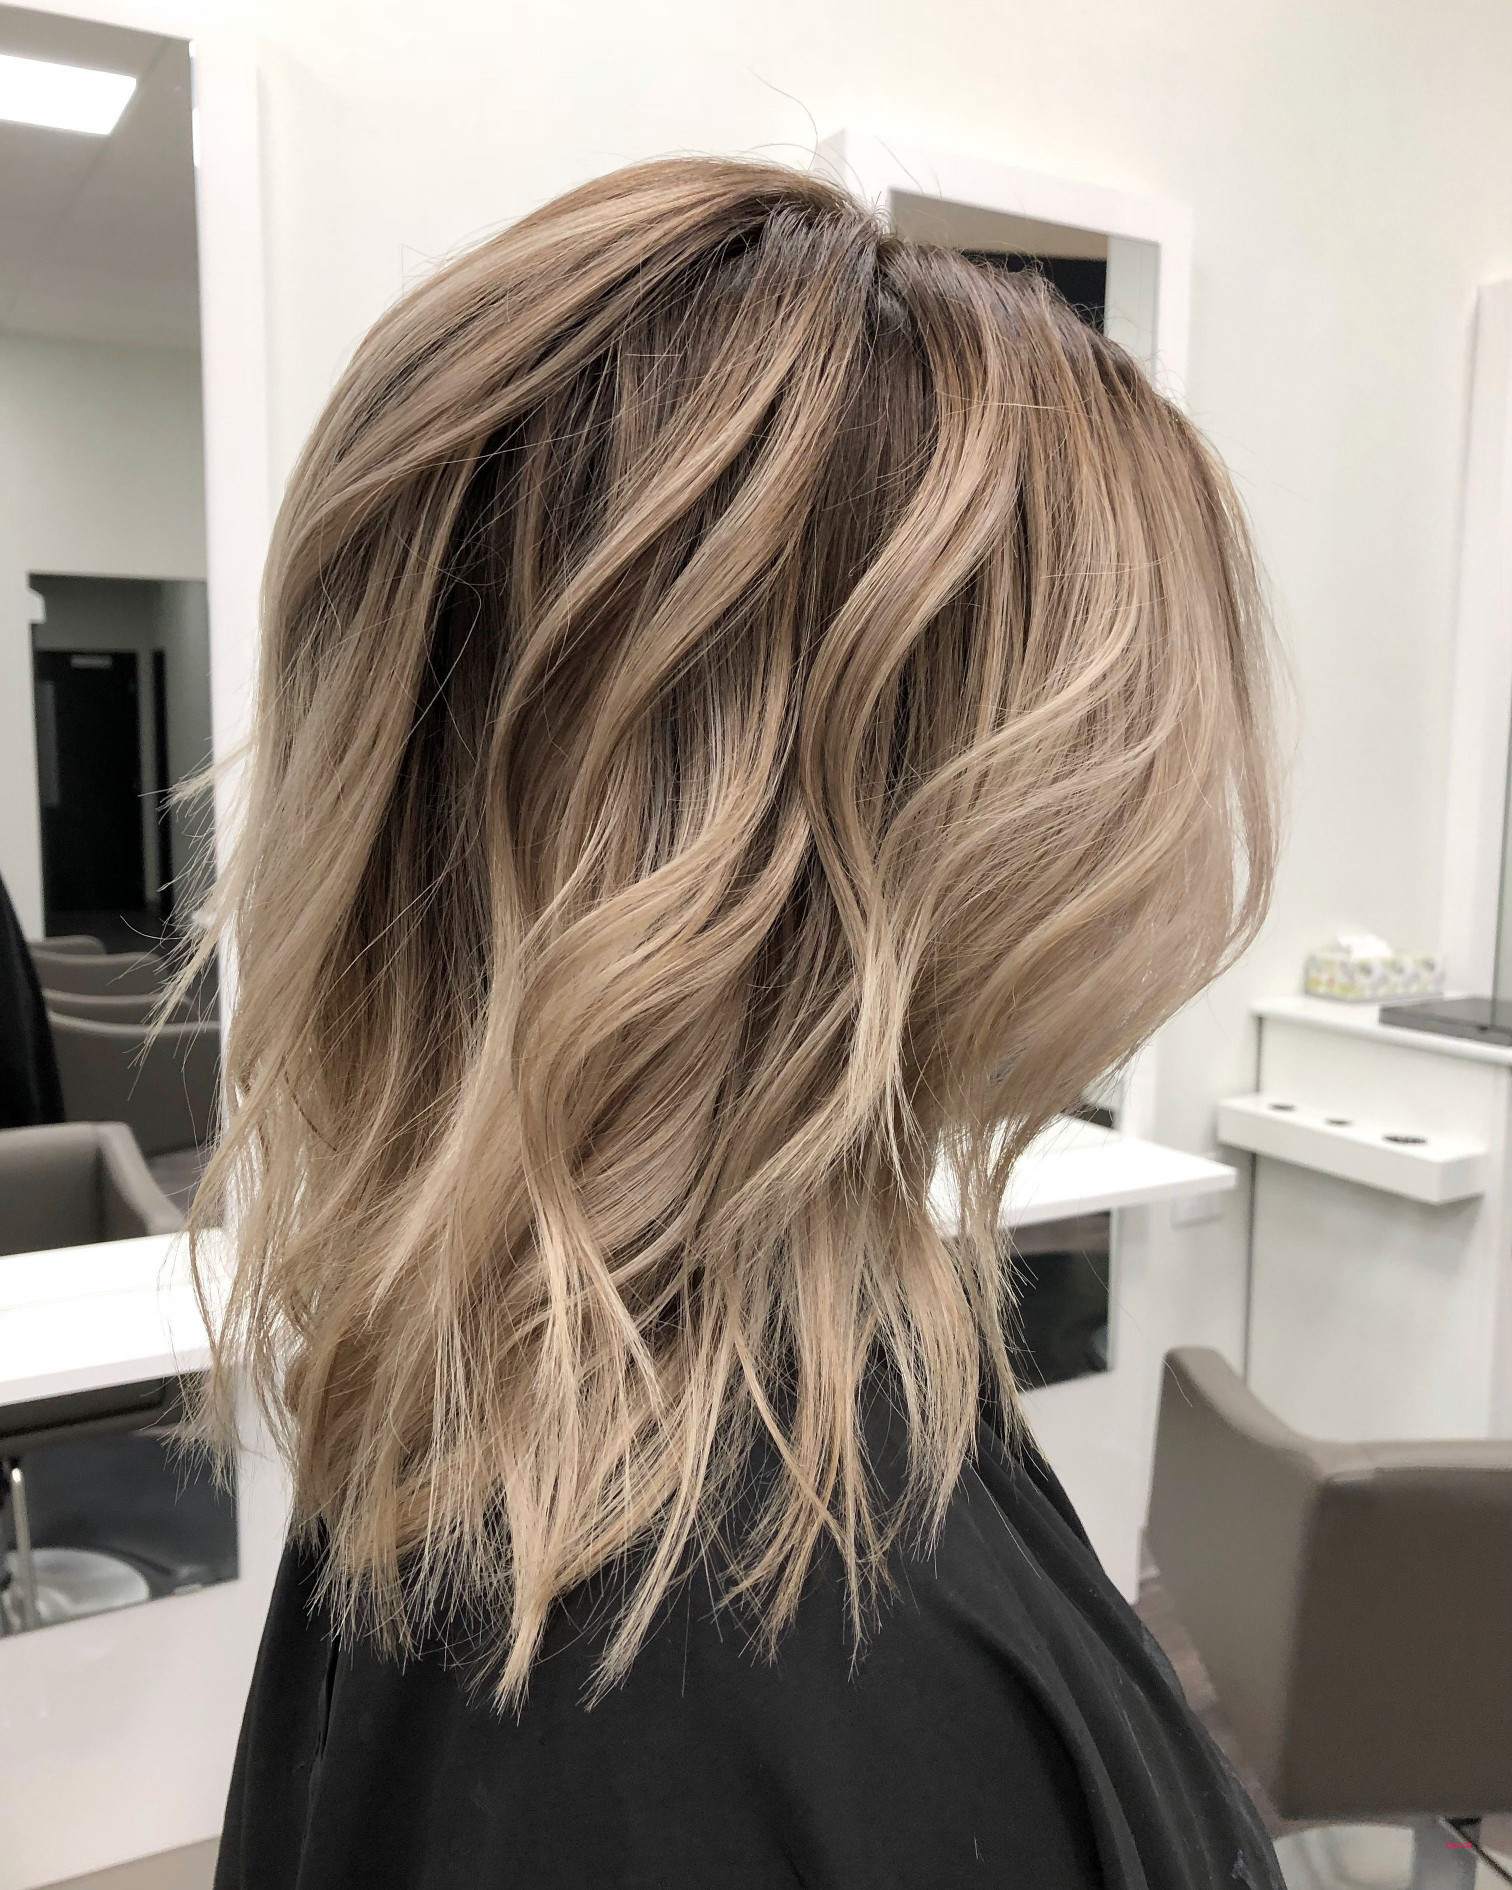 10 Best Medium Layered Hairstyles 2018 Brown & Ash Blonde With Regard To Widely Used Mid Length Layered Ash Blonde Hairstyles (View 1 of 20)